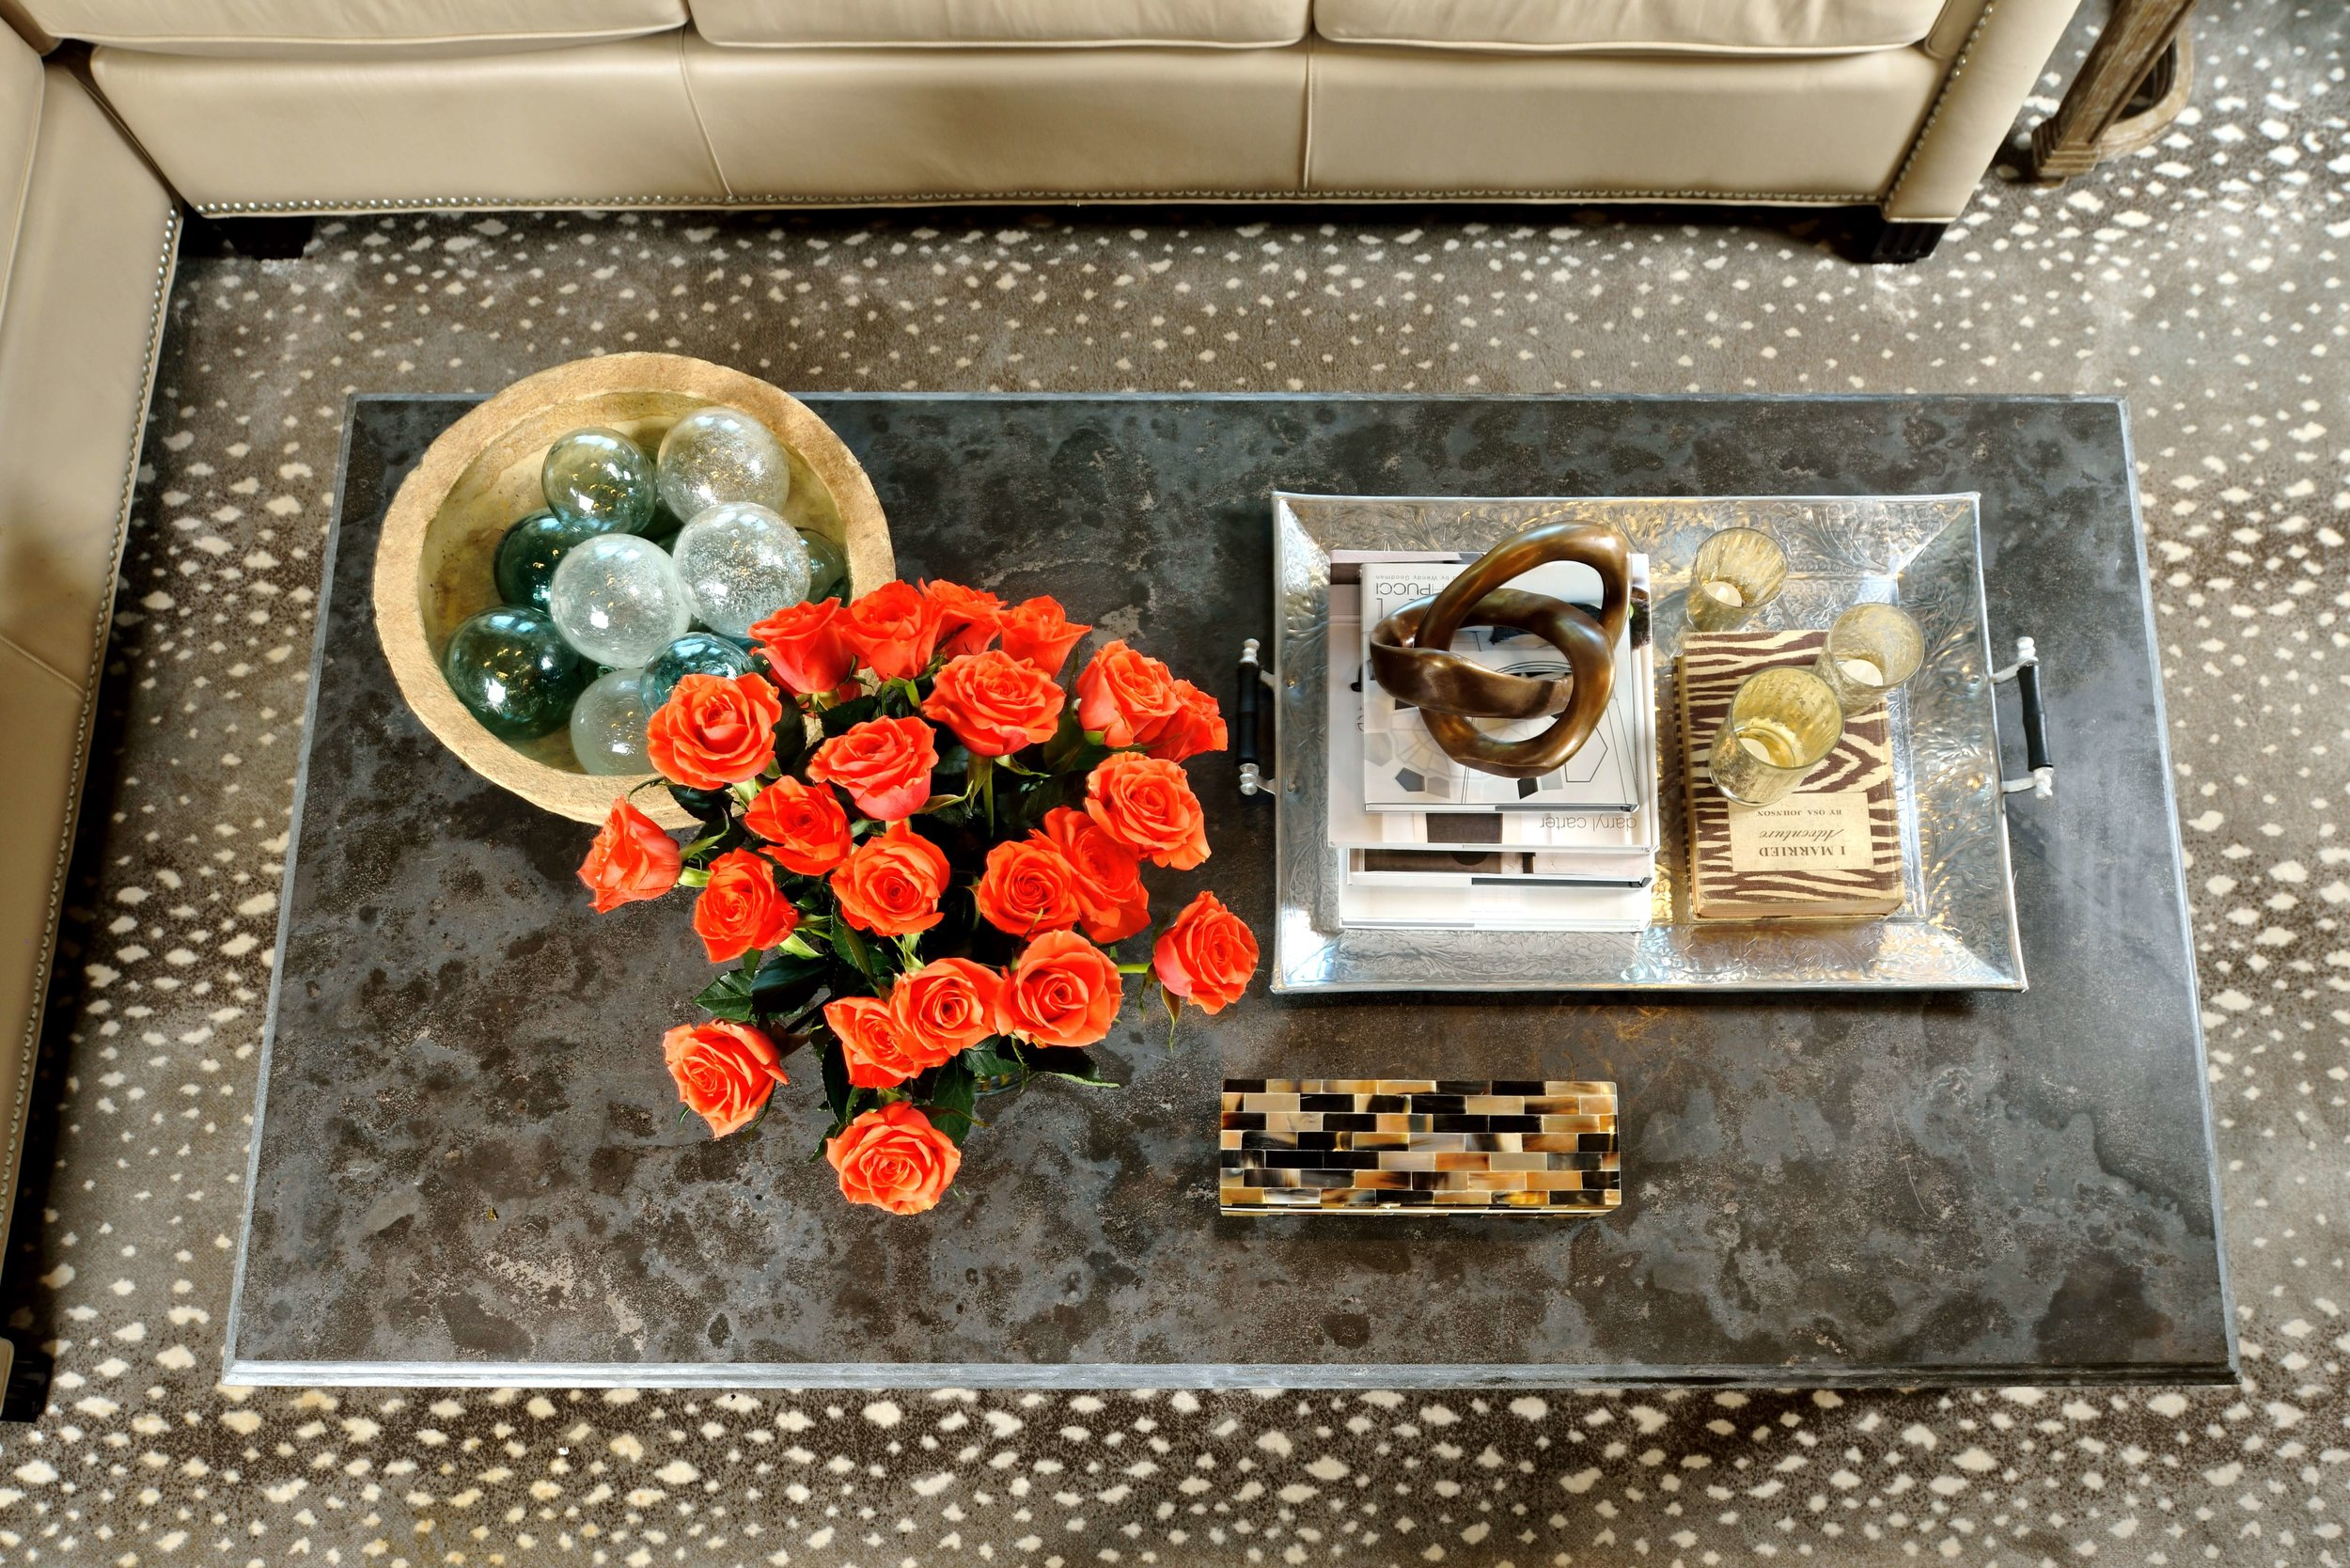 The antelope pattern rug here sets off this natural stone coffee table and it's decor, perfectly. #animalprintcarpet #rugideas #coffeetabledecor